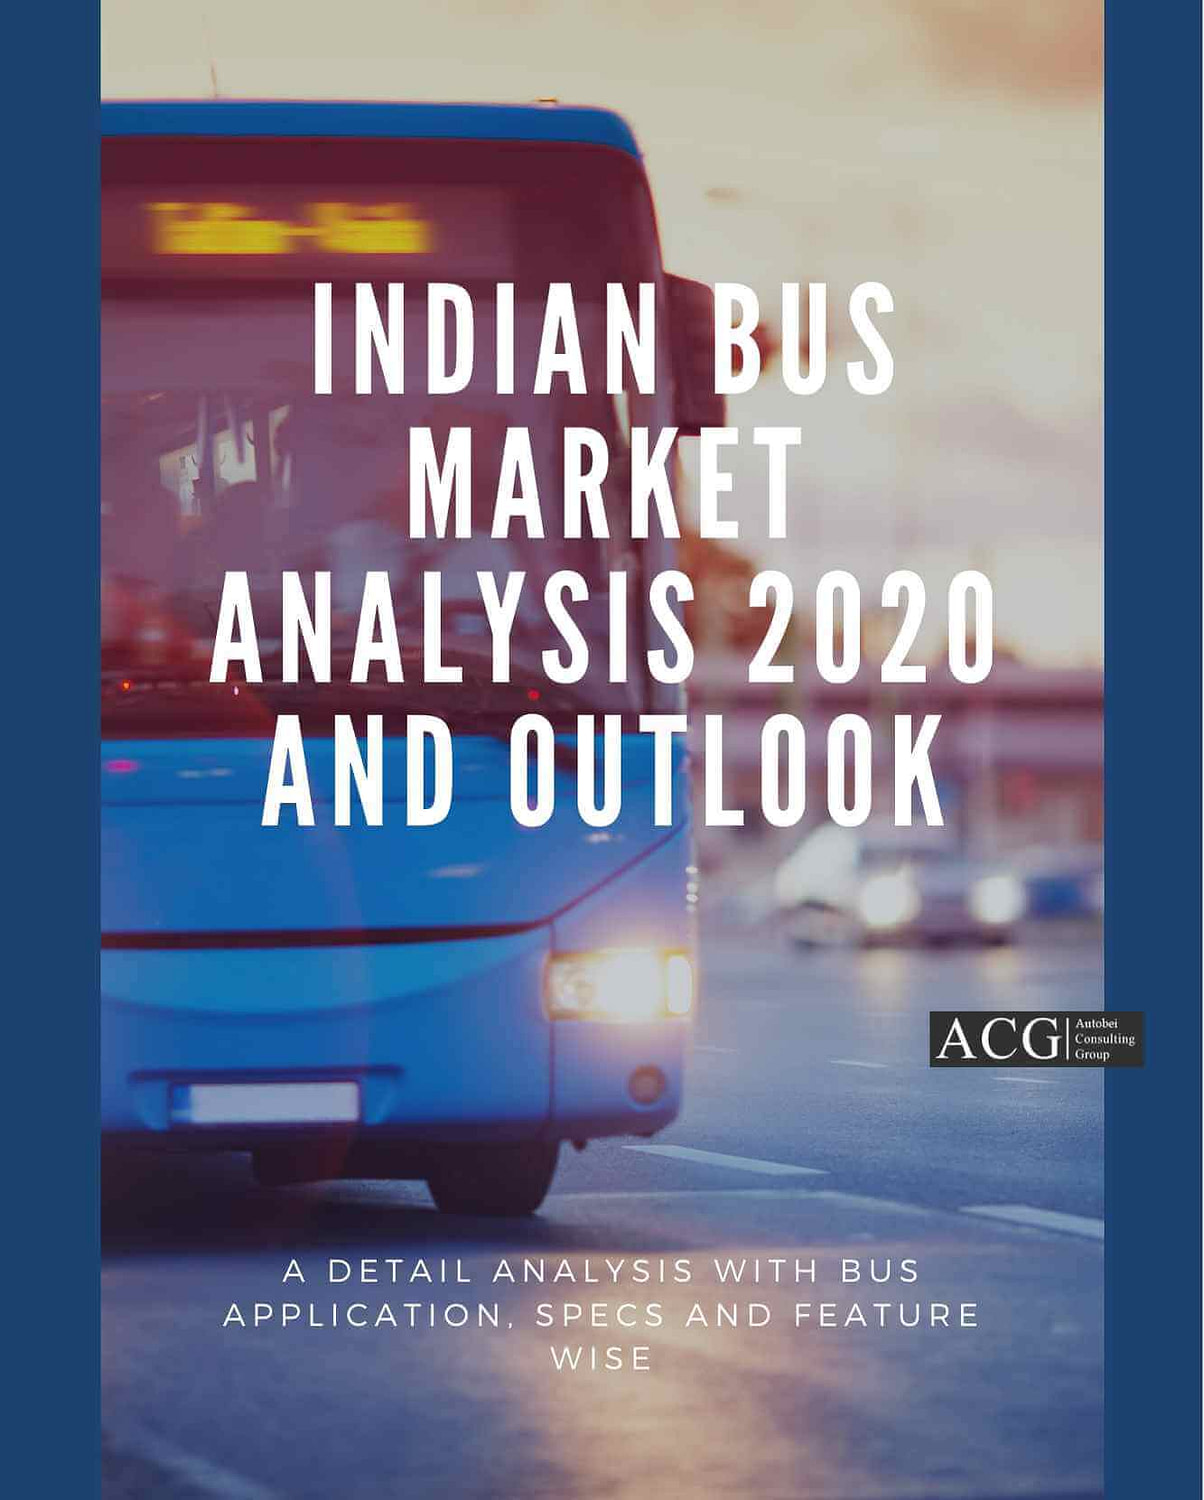 Indian Bus market Analysis 2020 and Outlook